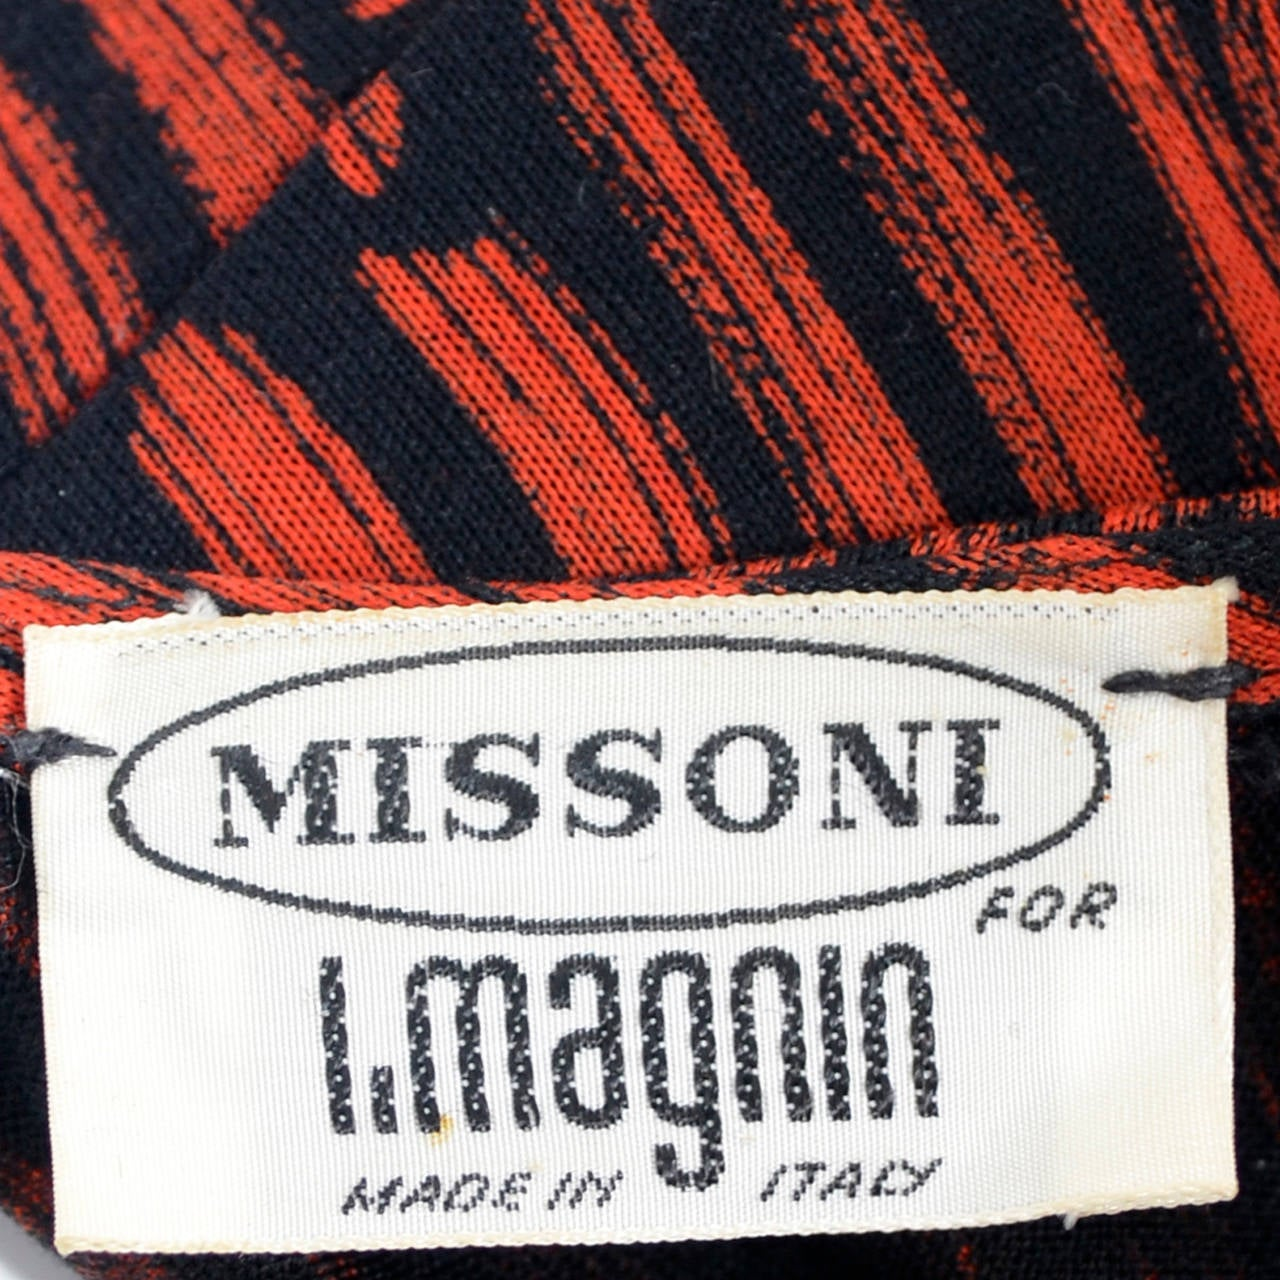 Vintage Missoni Dress I Magnin Abstract Red Black Print Peplum Italy For Sale 2